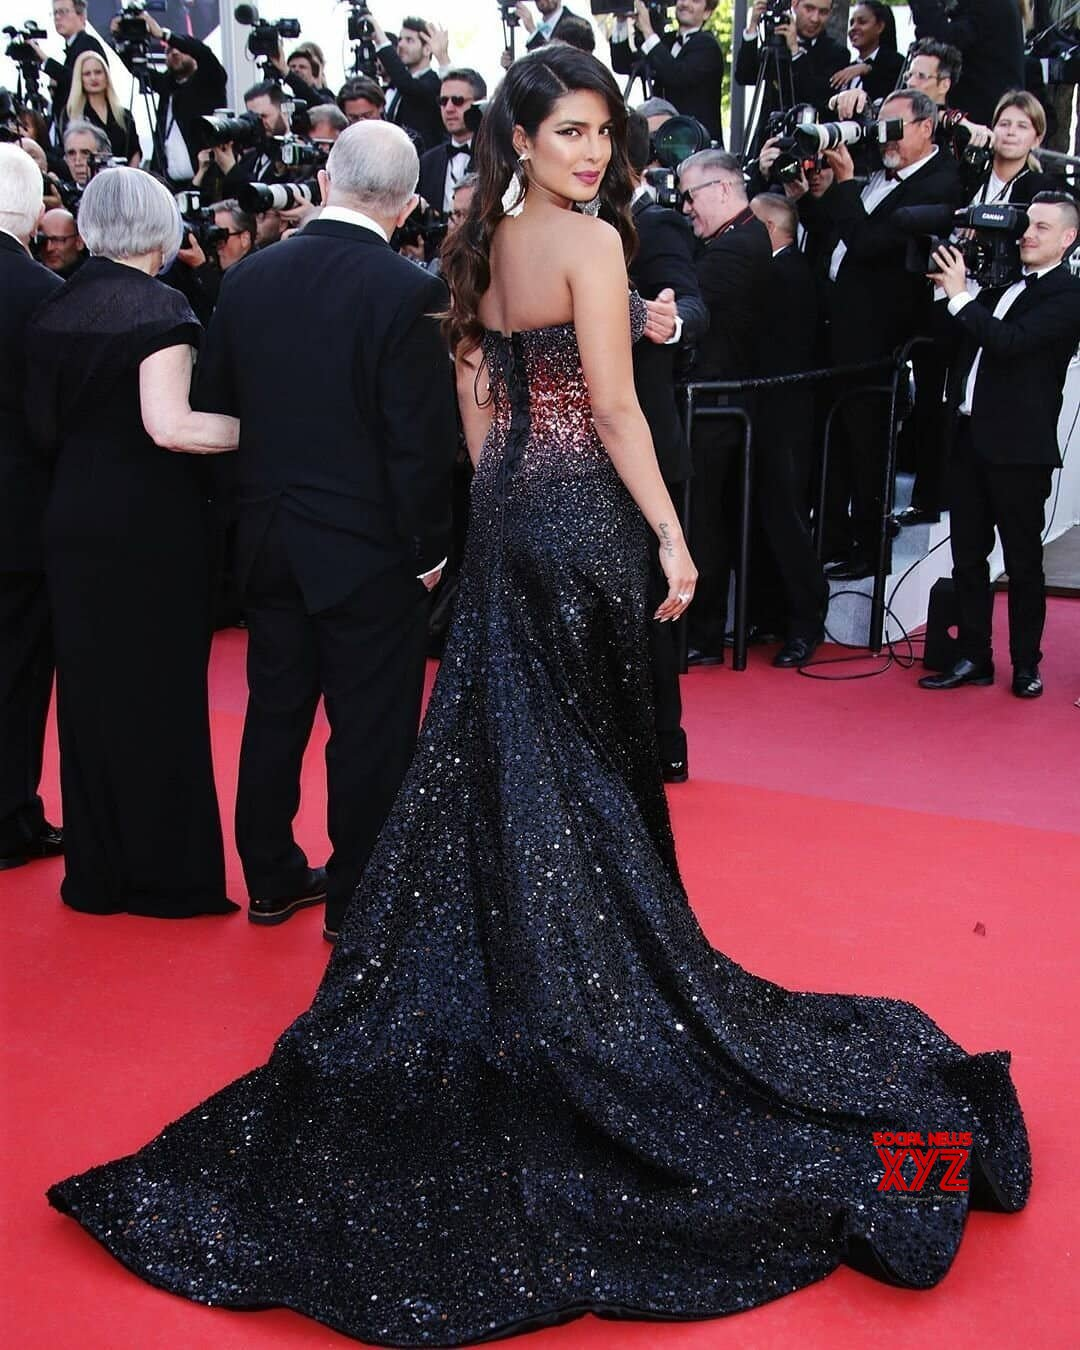 Cannes: Priyanka Chopra at 2019 Cannes Film Festival in France #Gallery